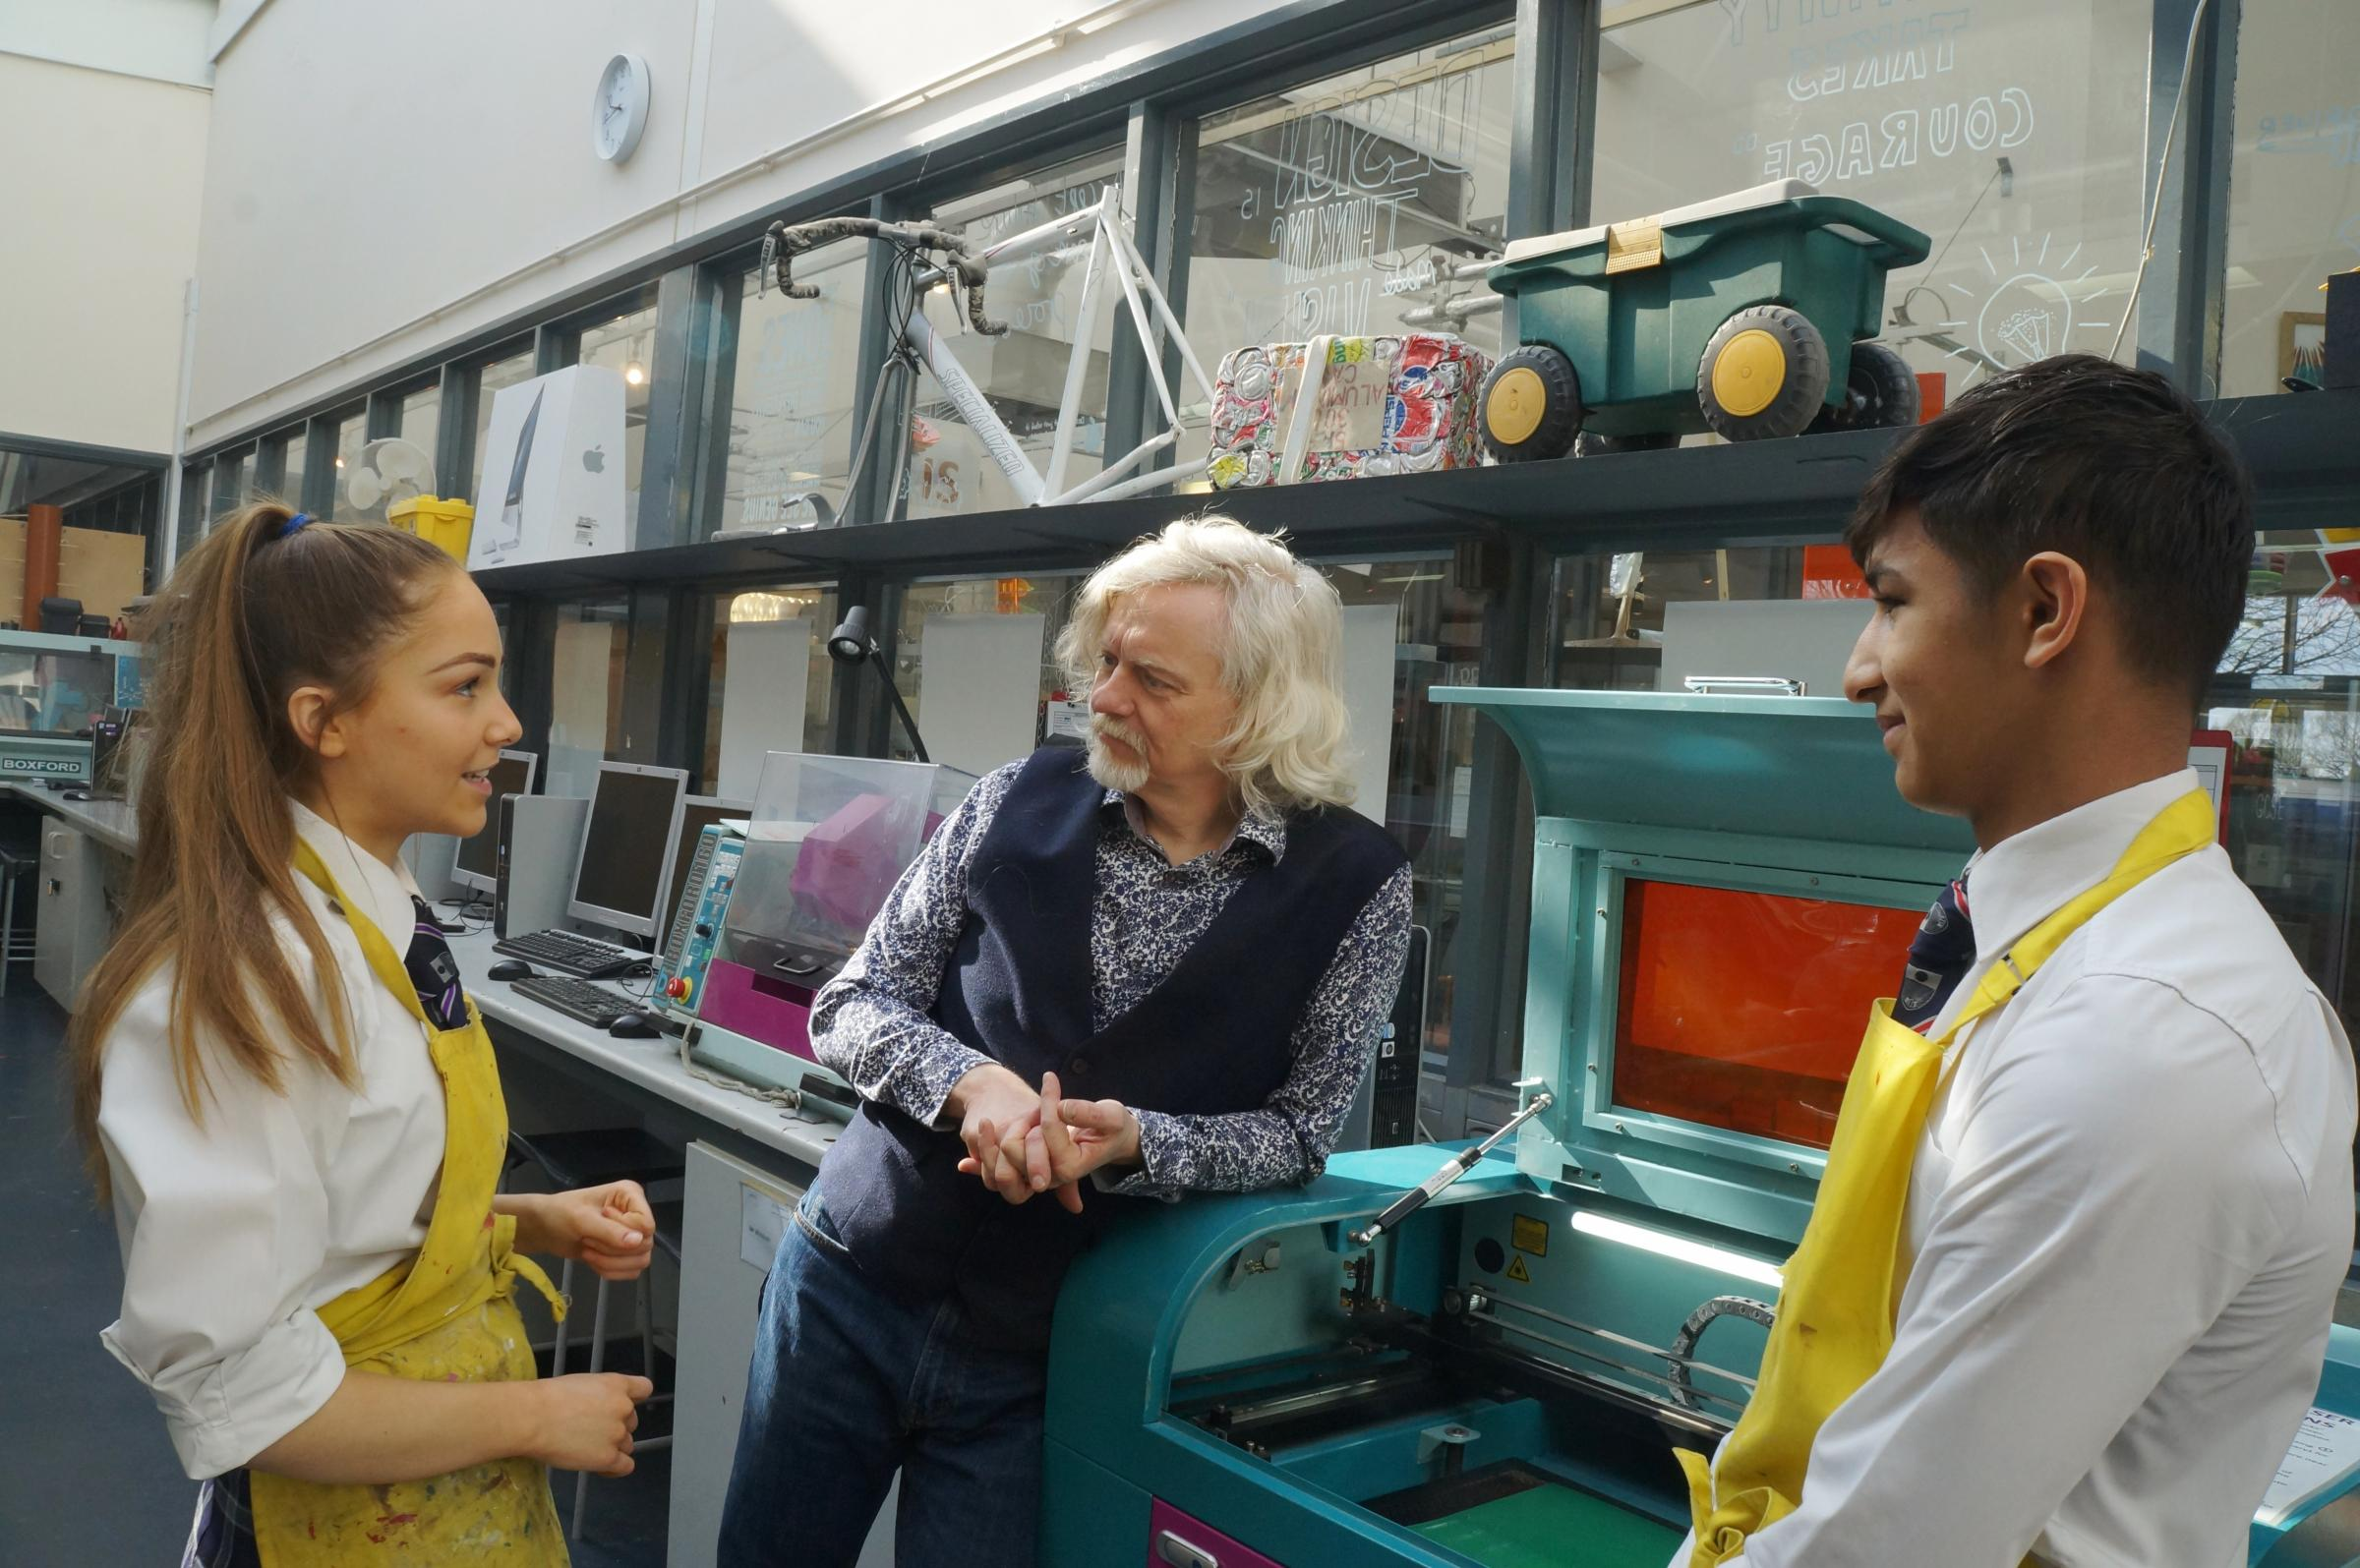 Year 10 students Zuzu Borland (left) and Faris Khan (right) show Marty Jopson the laser cutter during his visit to the design technology workshop at GSAL